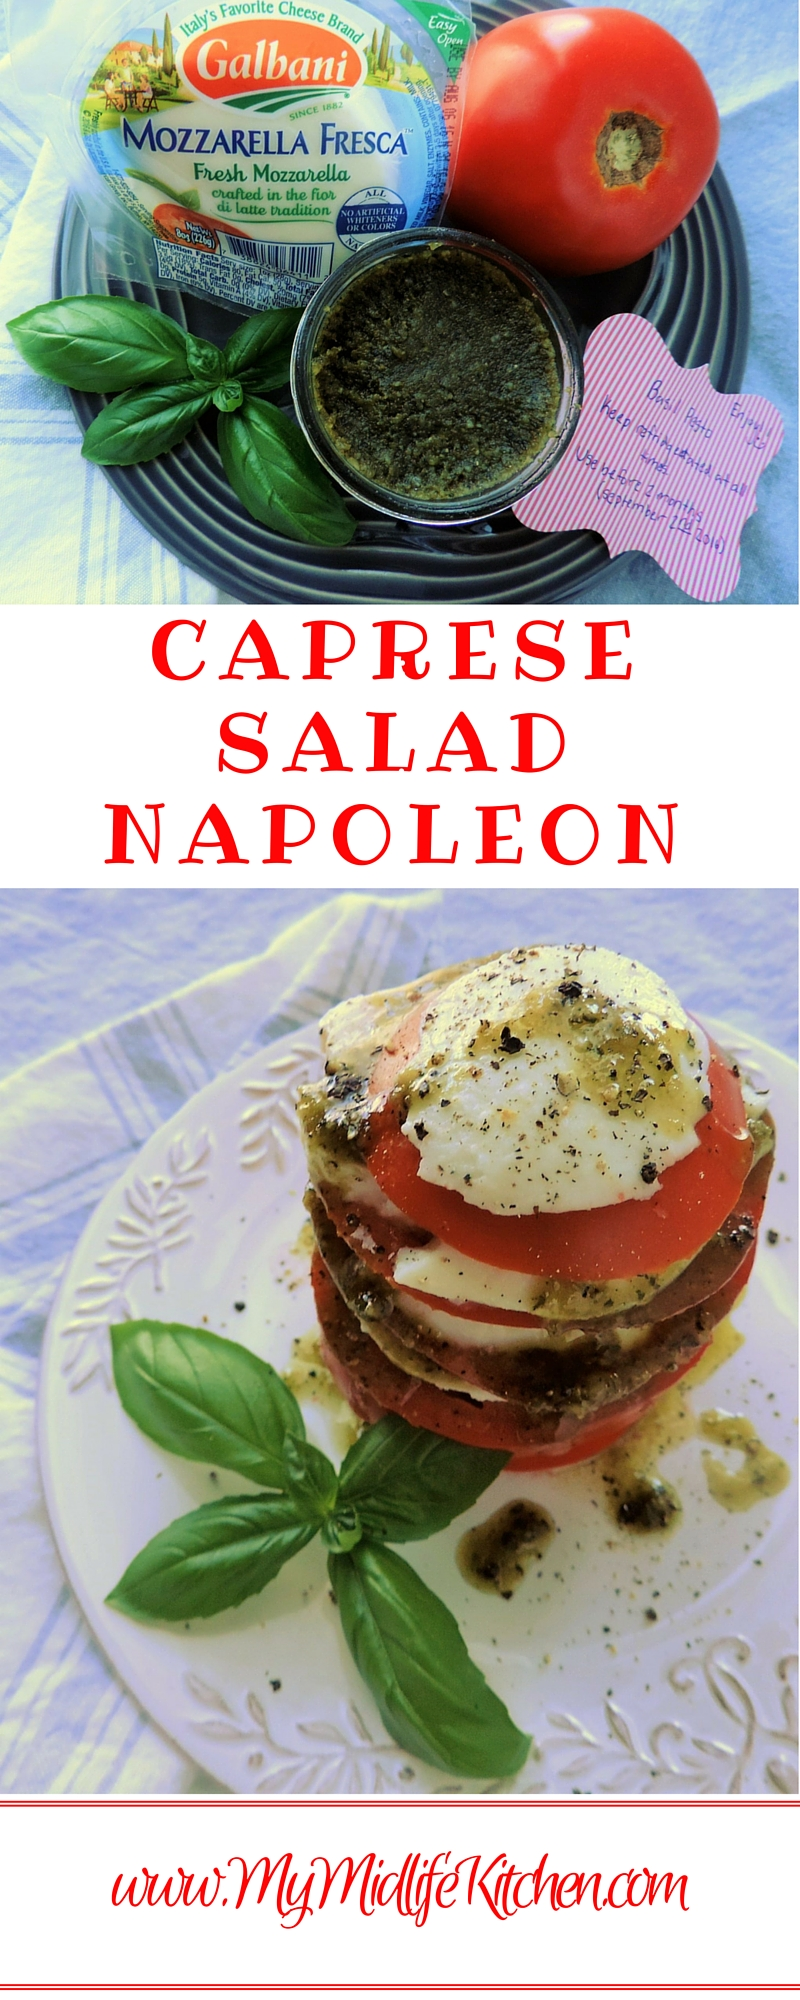 Napoleon Salad: recipe, ingredients. Layered salad with chicken and mushrooms 79